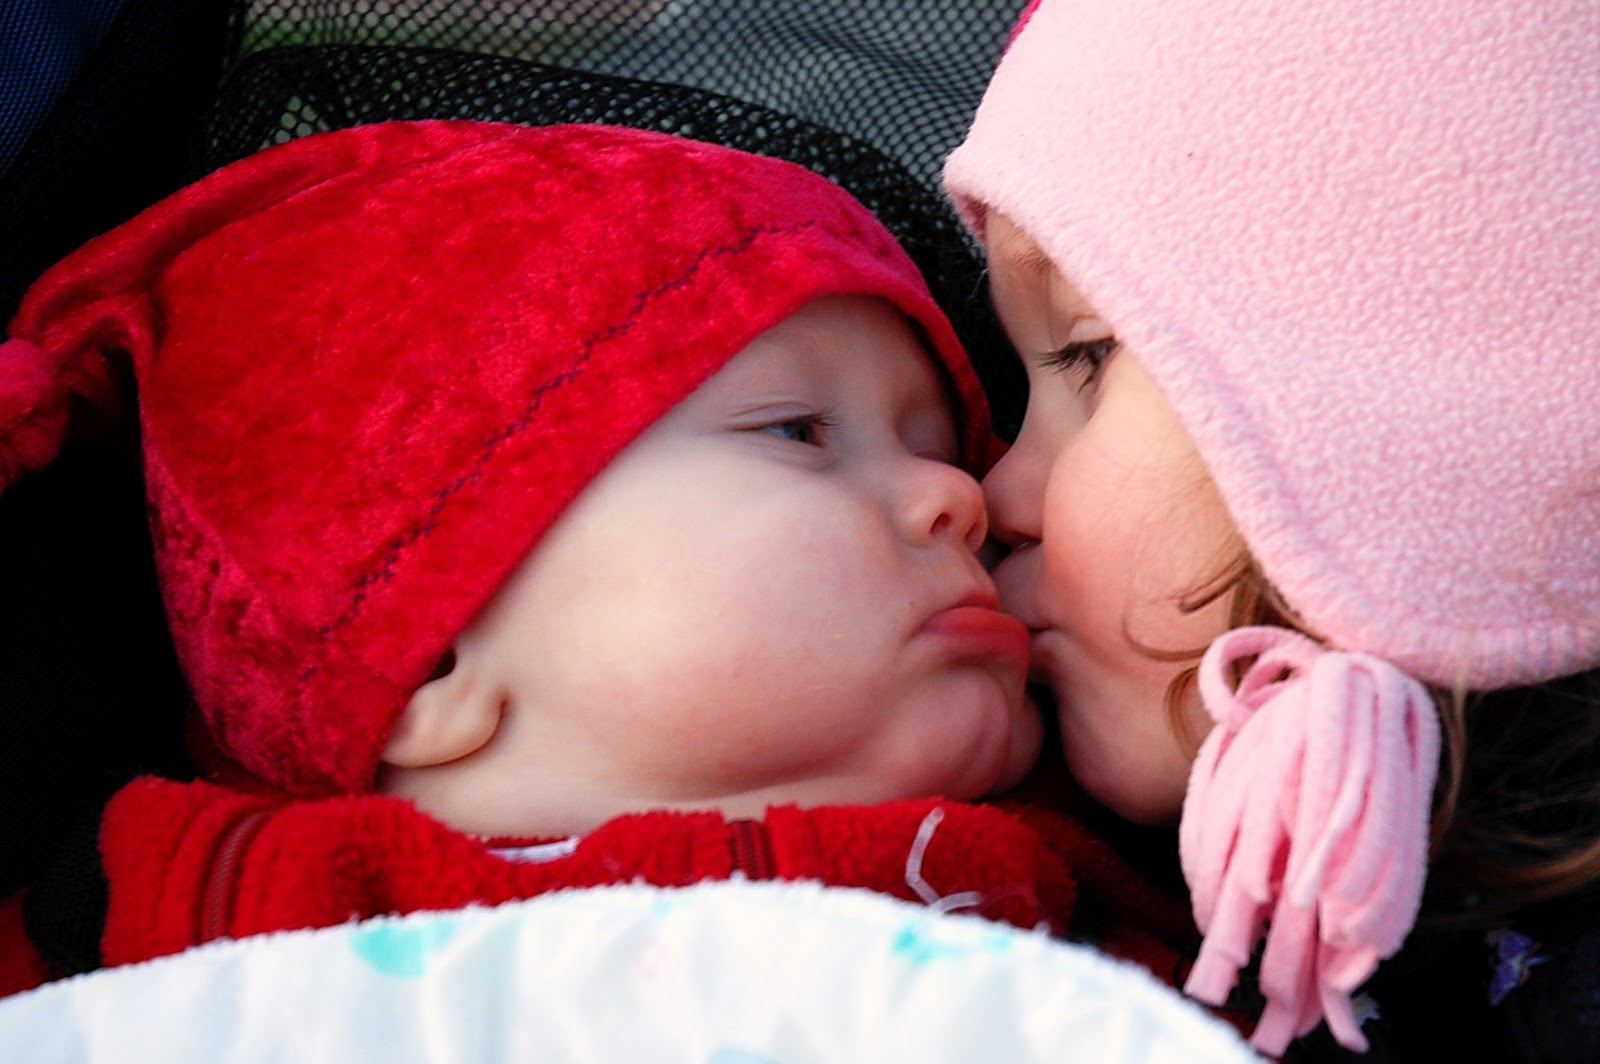 http://3.bp.blogspot.com/-EofPN9cEvQ8/UD4EArSNKFI/AAAAAAAAA1w/314czO6v23Y/s1600/love-couple-cute-babies-kissing-baby+love+images+download-cute+baby+lo